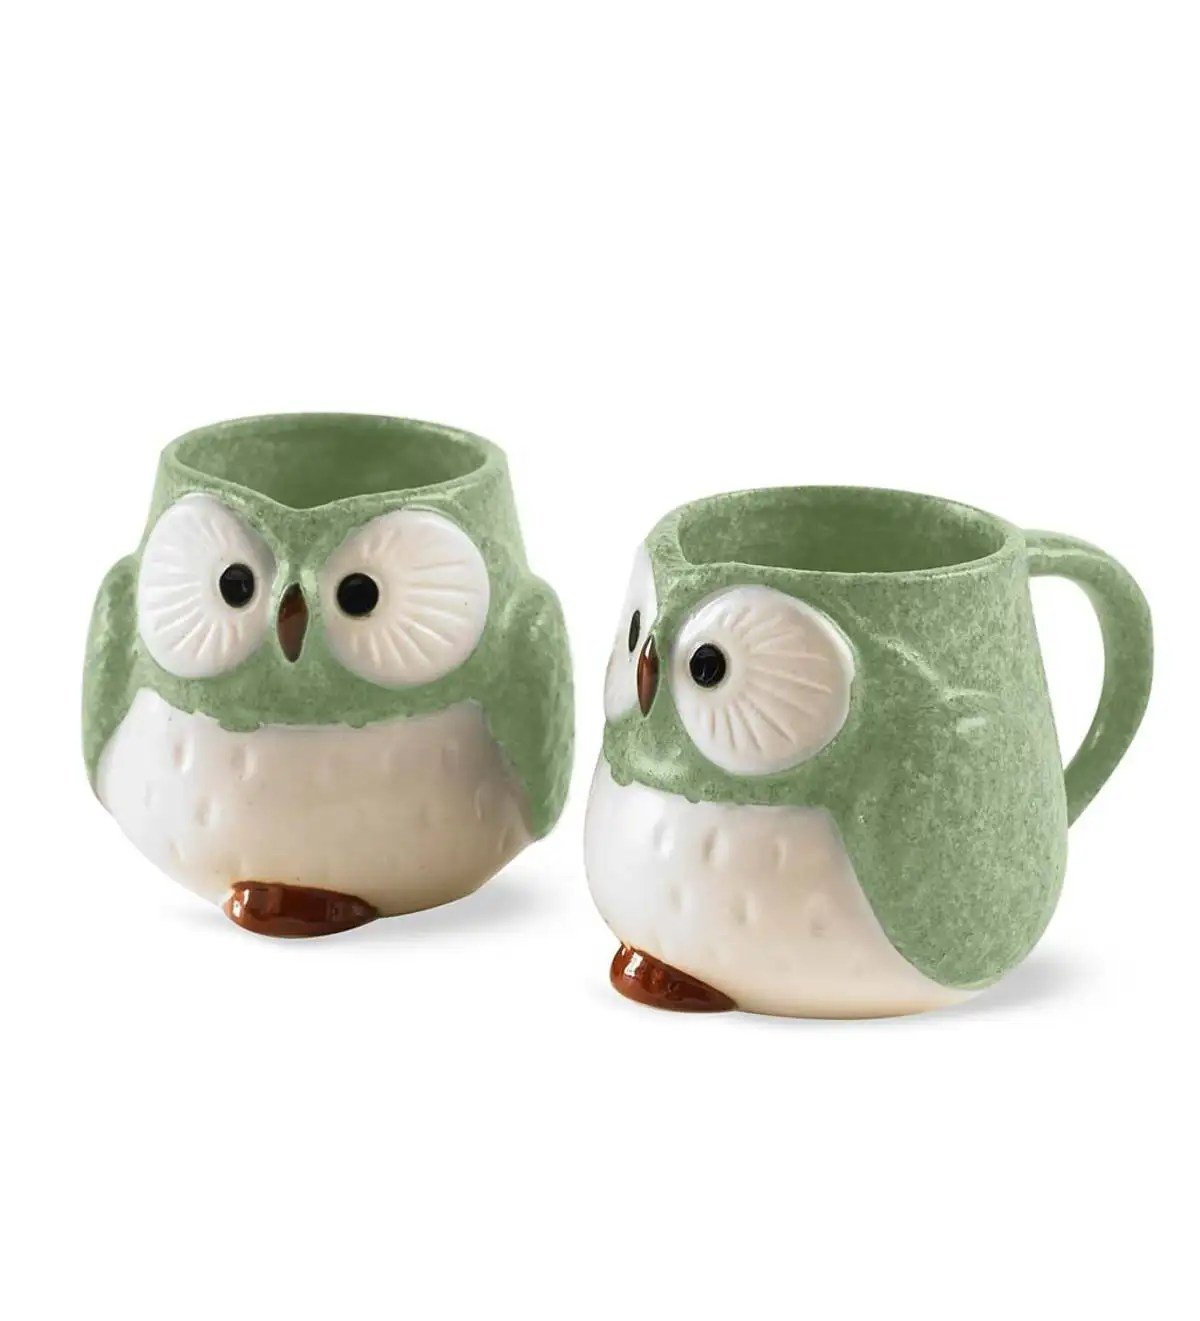 Owl Ceramic Mug Ceramic Owl Mugs Set Of 2 Housewares Home Accessories